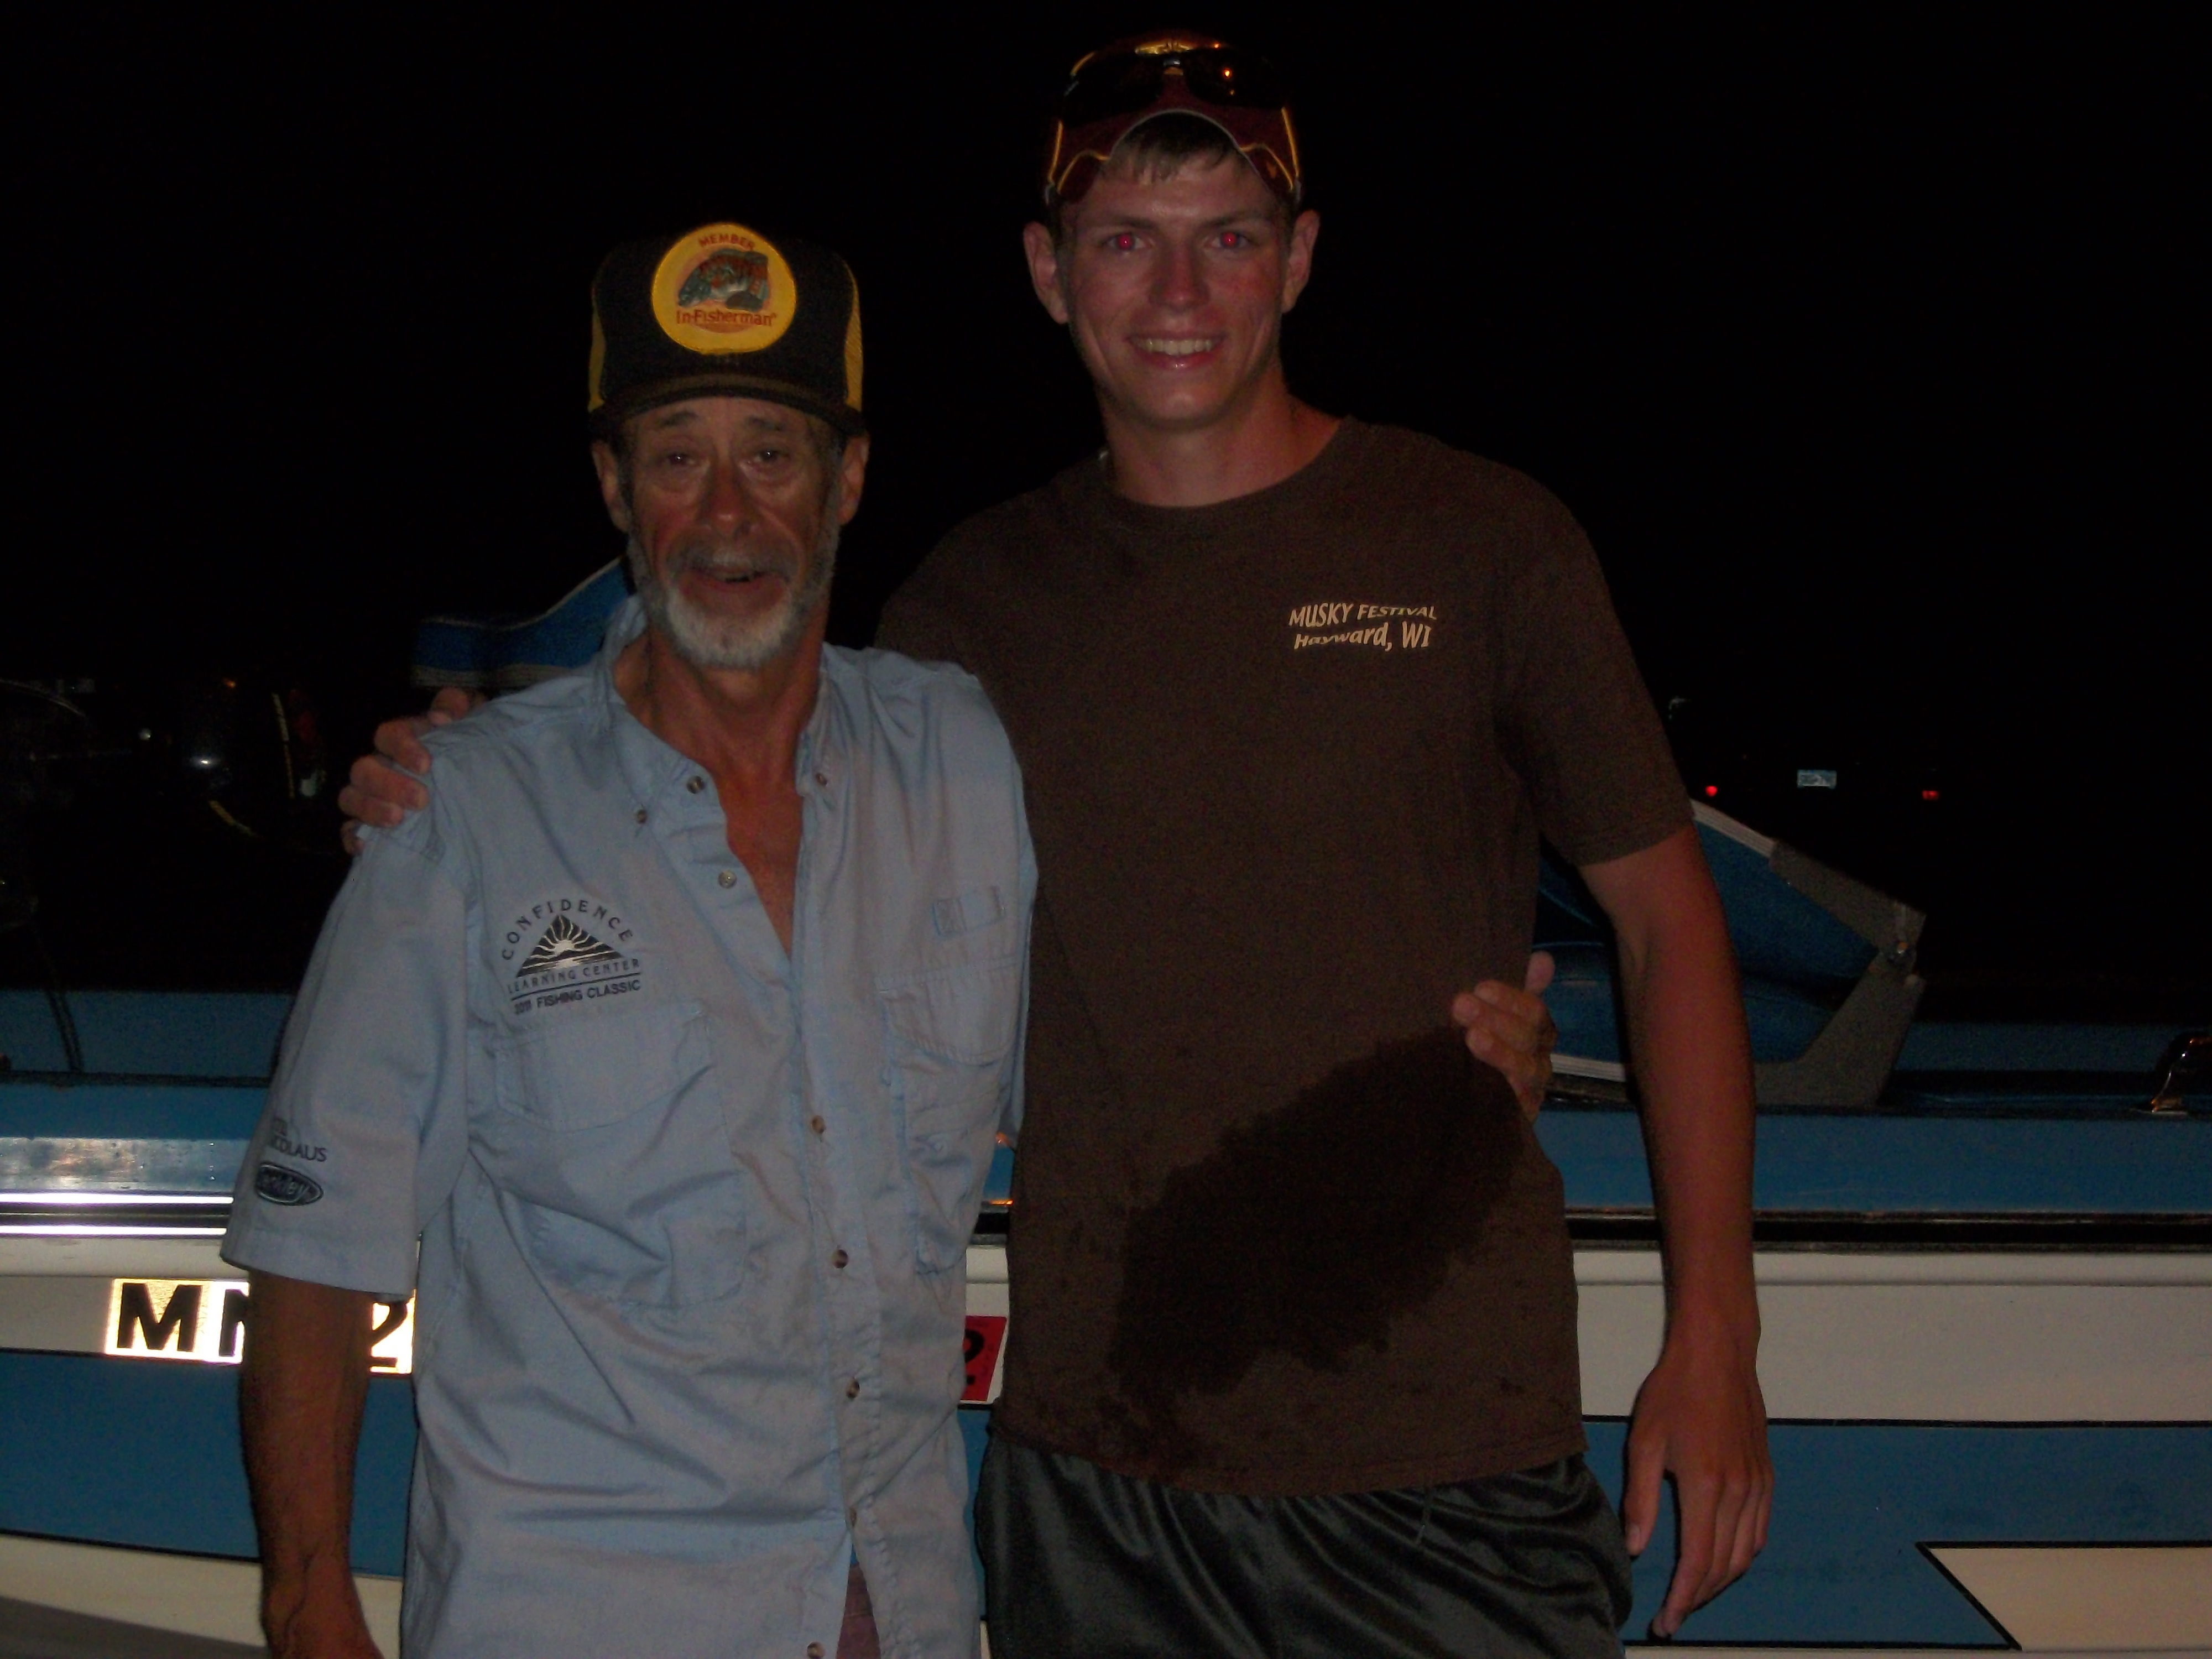 Fishing Me and Coop after 12 hours of fishing. A day I will never forget as I learned more about catching big fish than I could ever dream of. What a great guy!